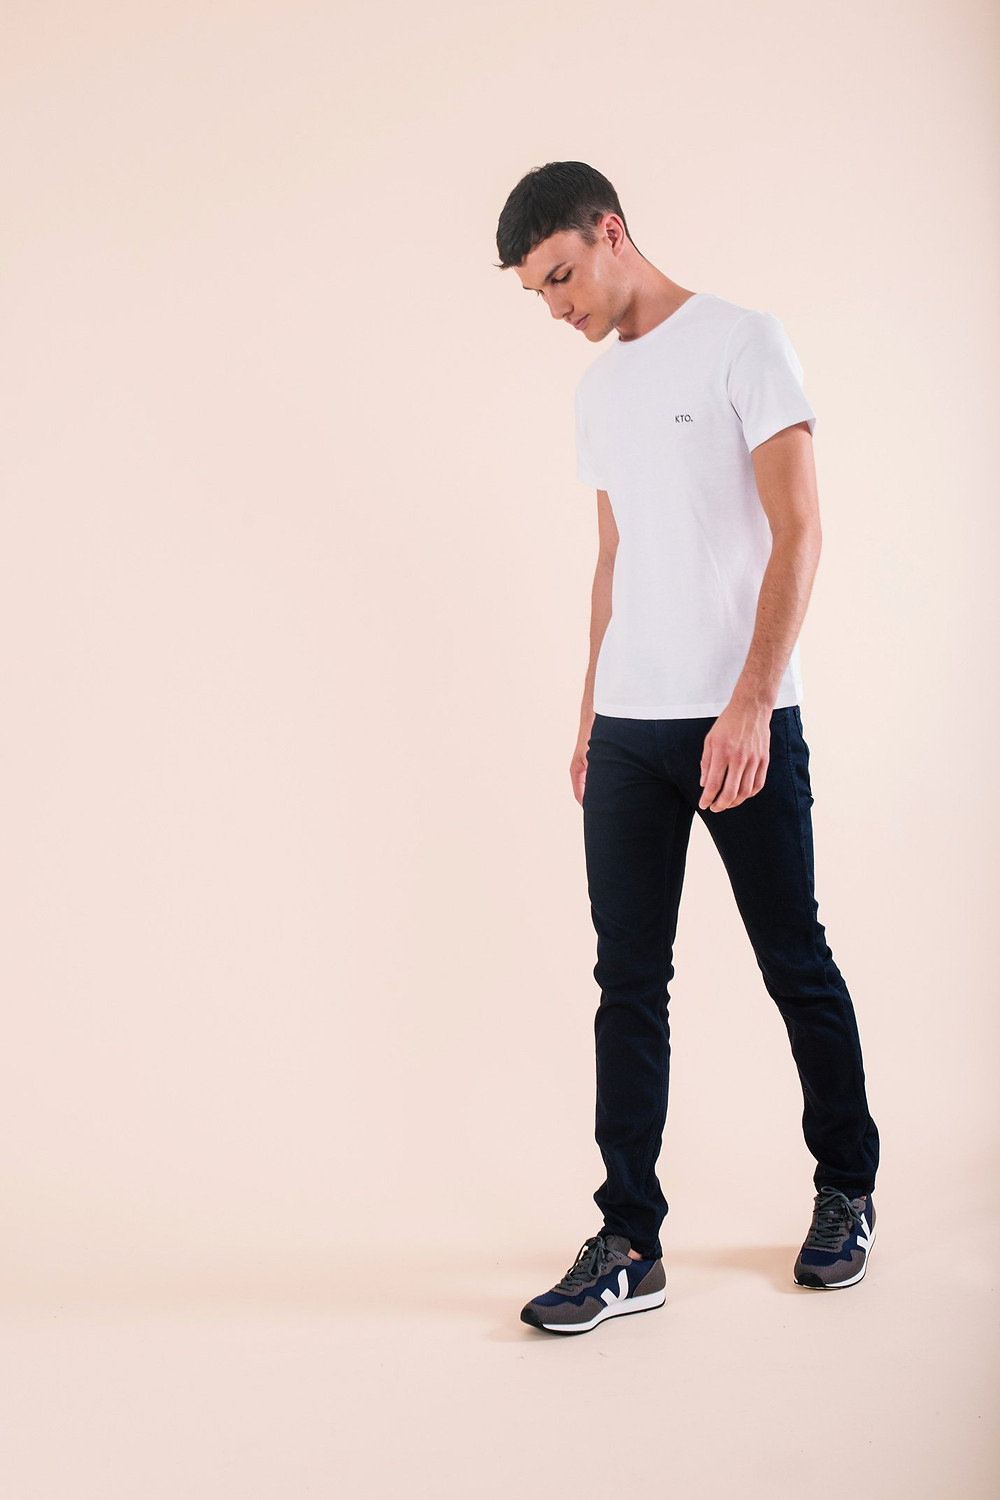 a guy looking down walking in a white t-shirt and black jeans